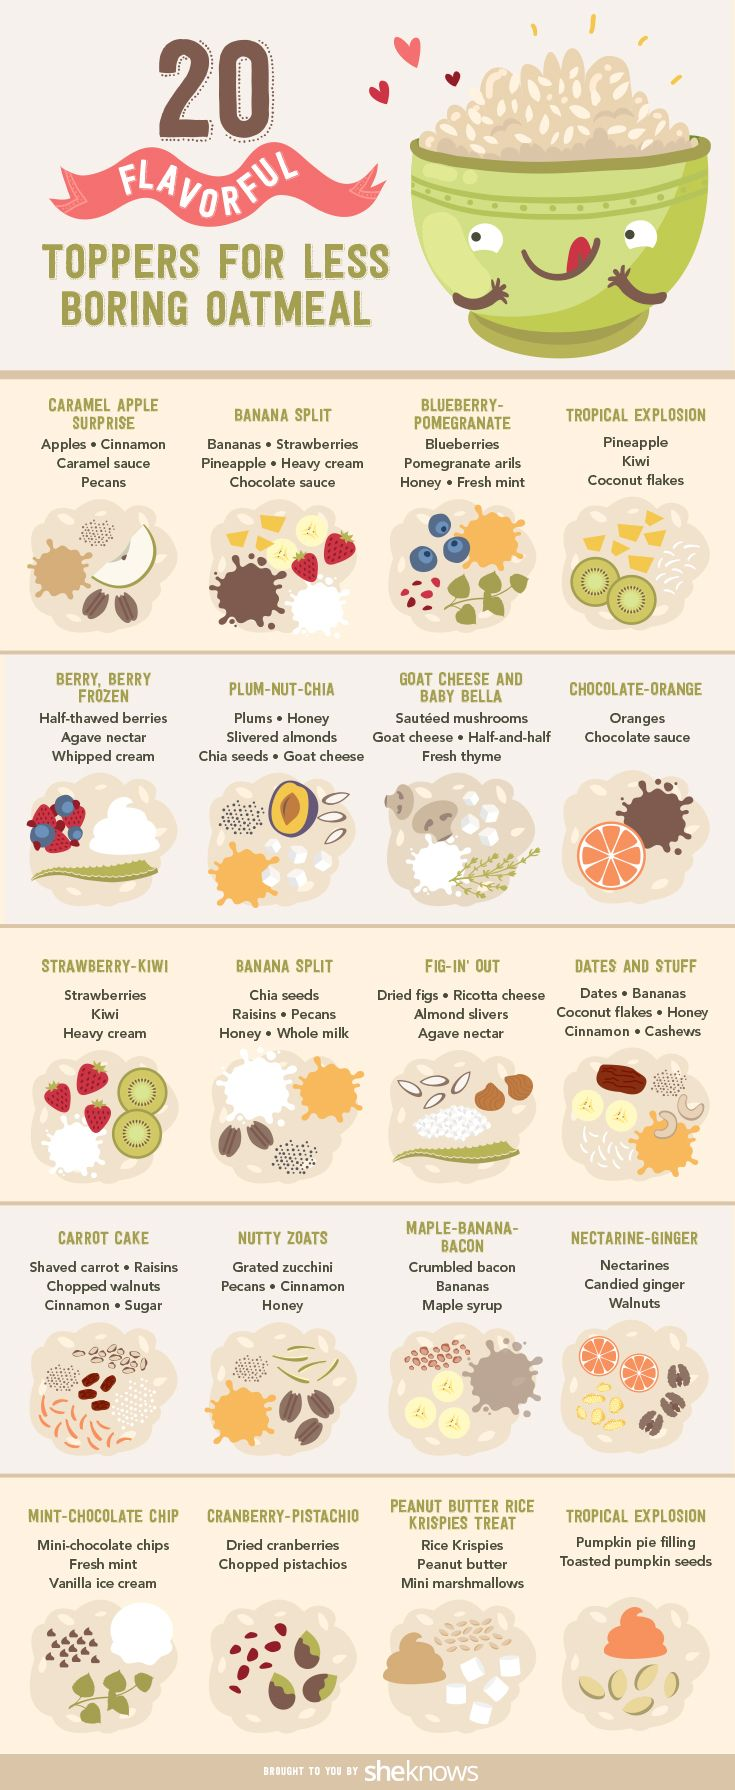 This oatmeal recipe guide has all the toppings you could think of for your breakfast. Oatmeal will never be boring again!